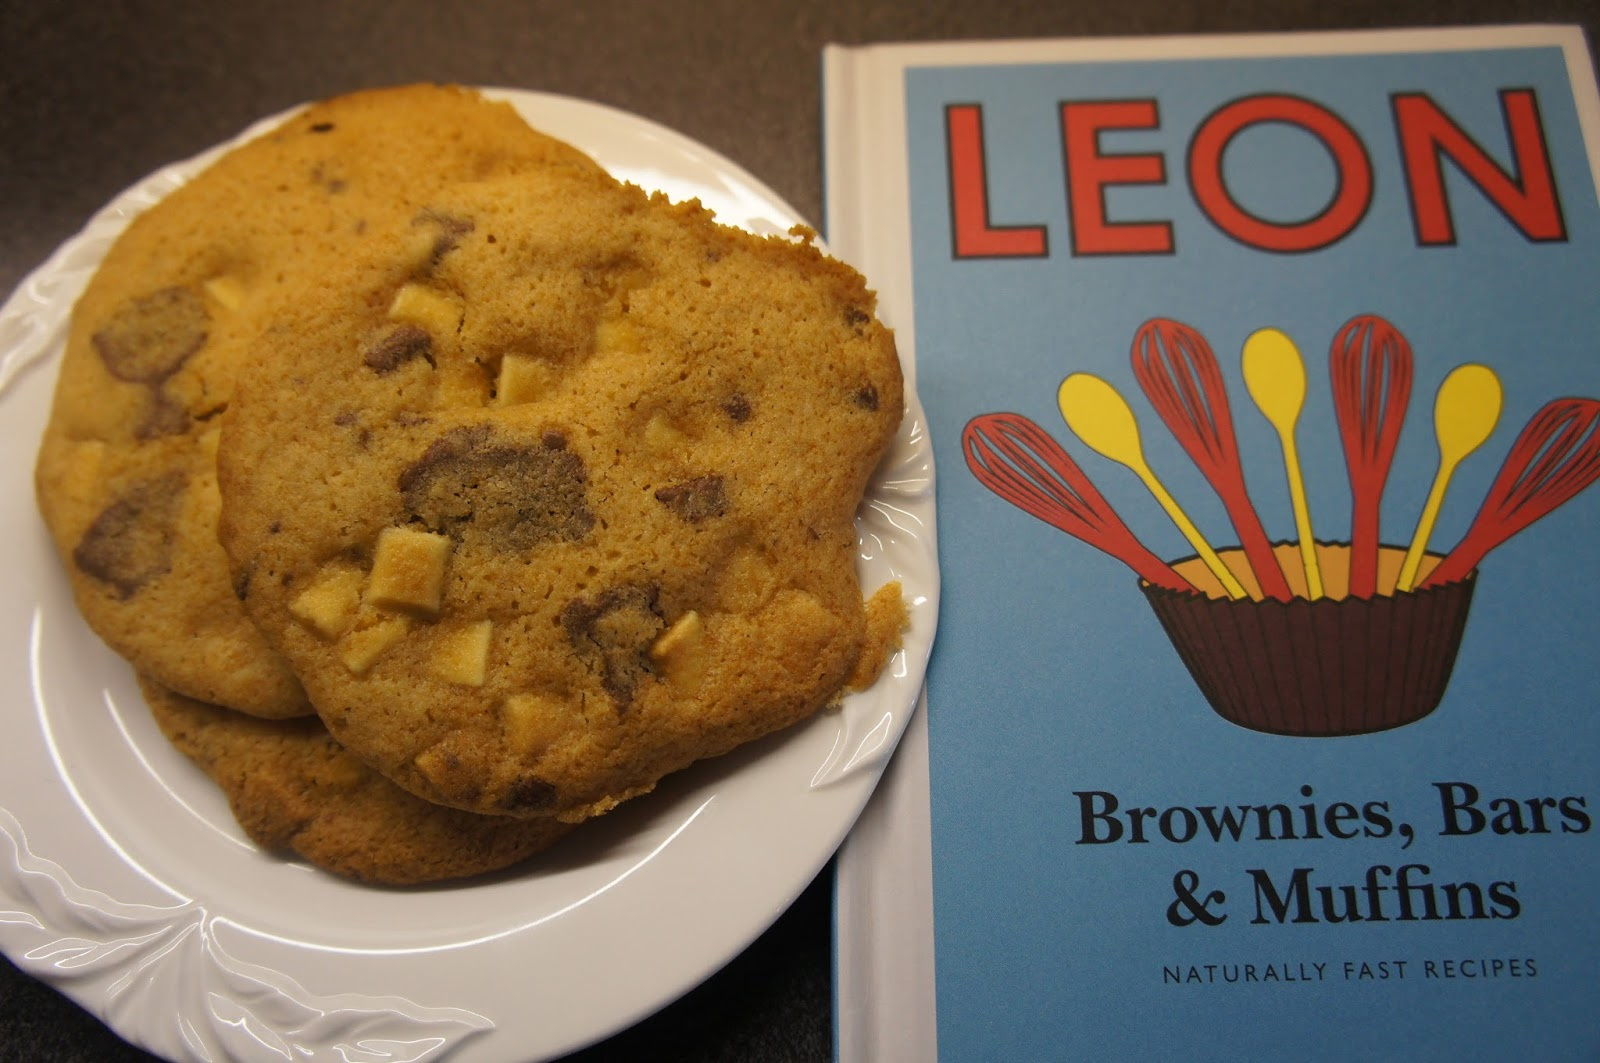 Chocolate Chip Cookies Recipe By Leon